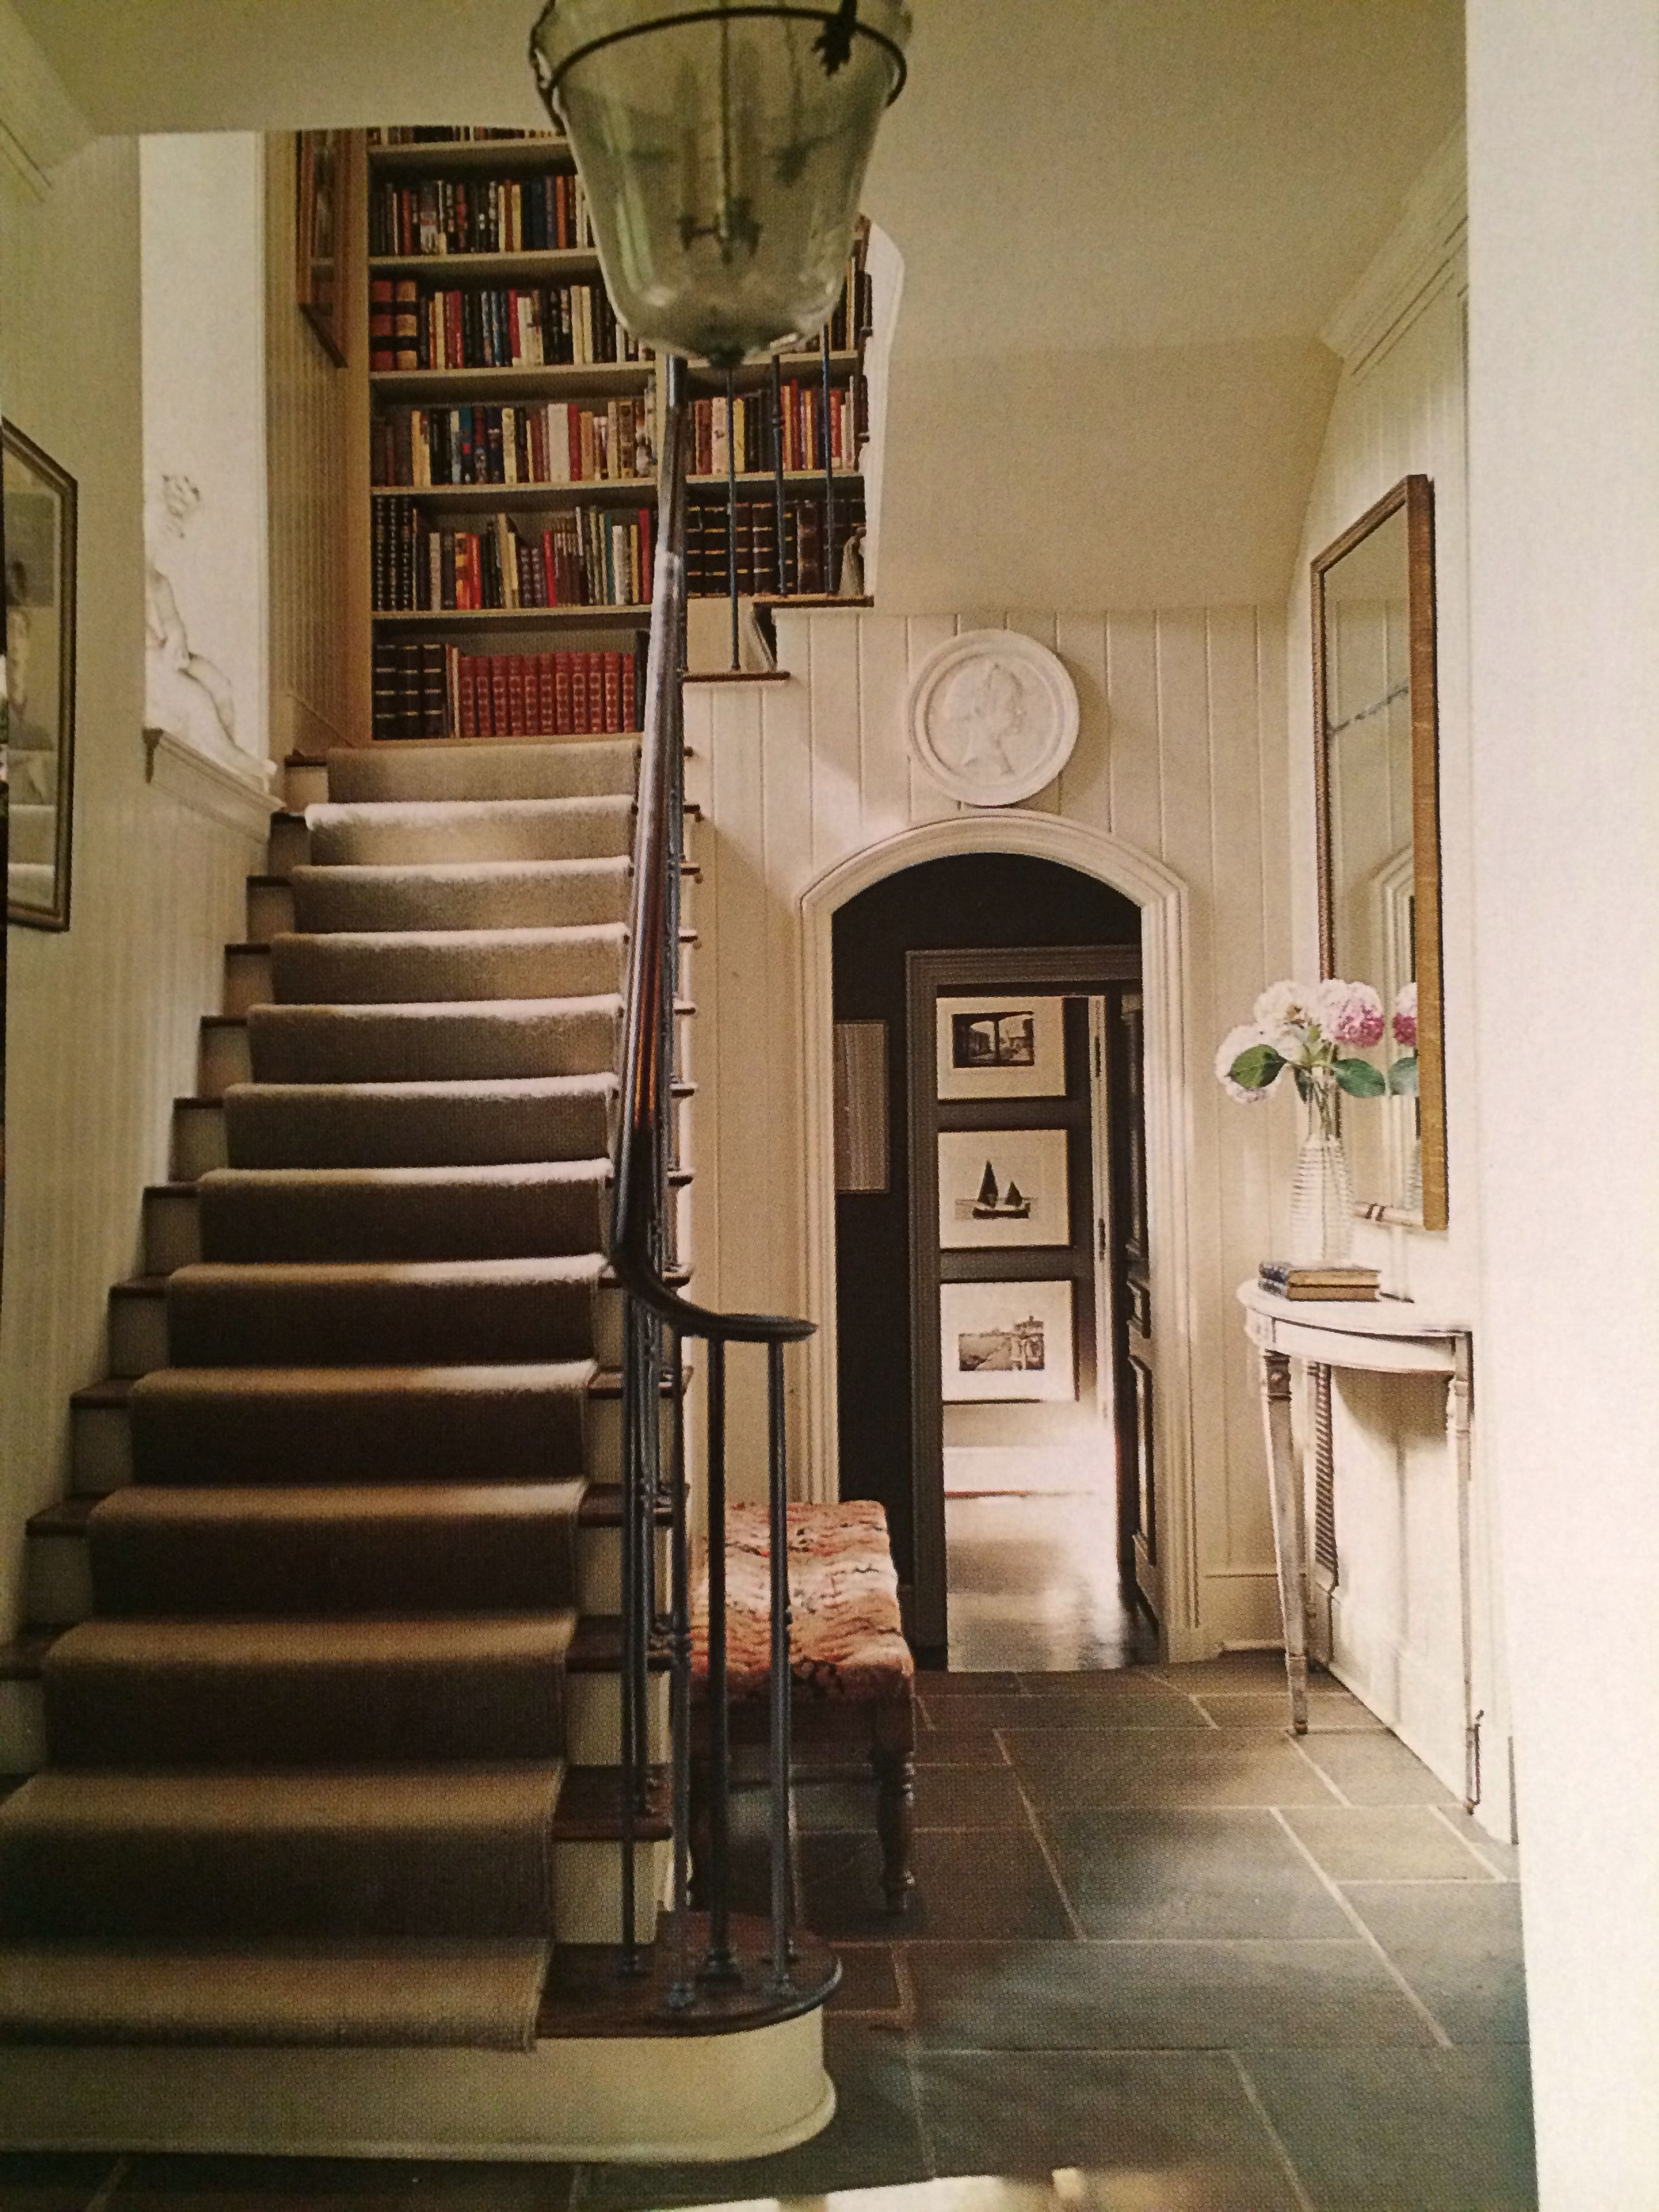 Home interior stairs love the bookcase at the top of the stairs  home decor  pinterest